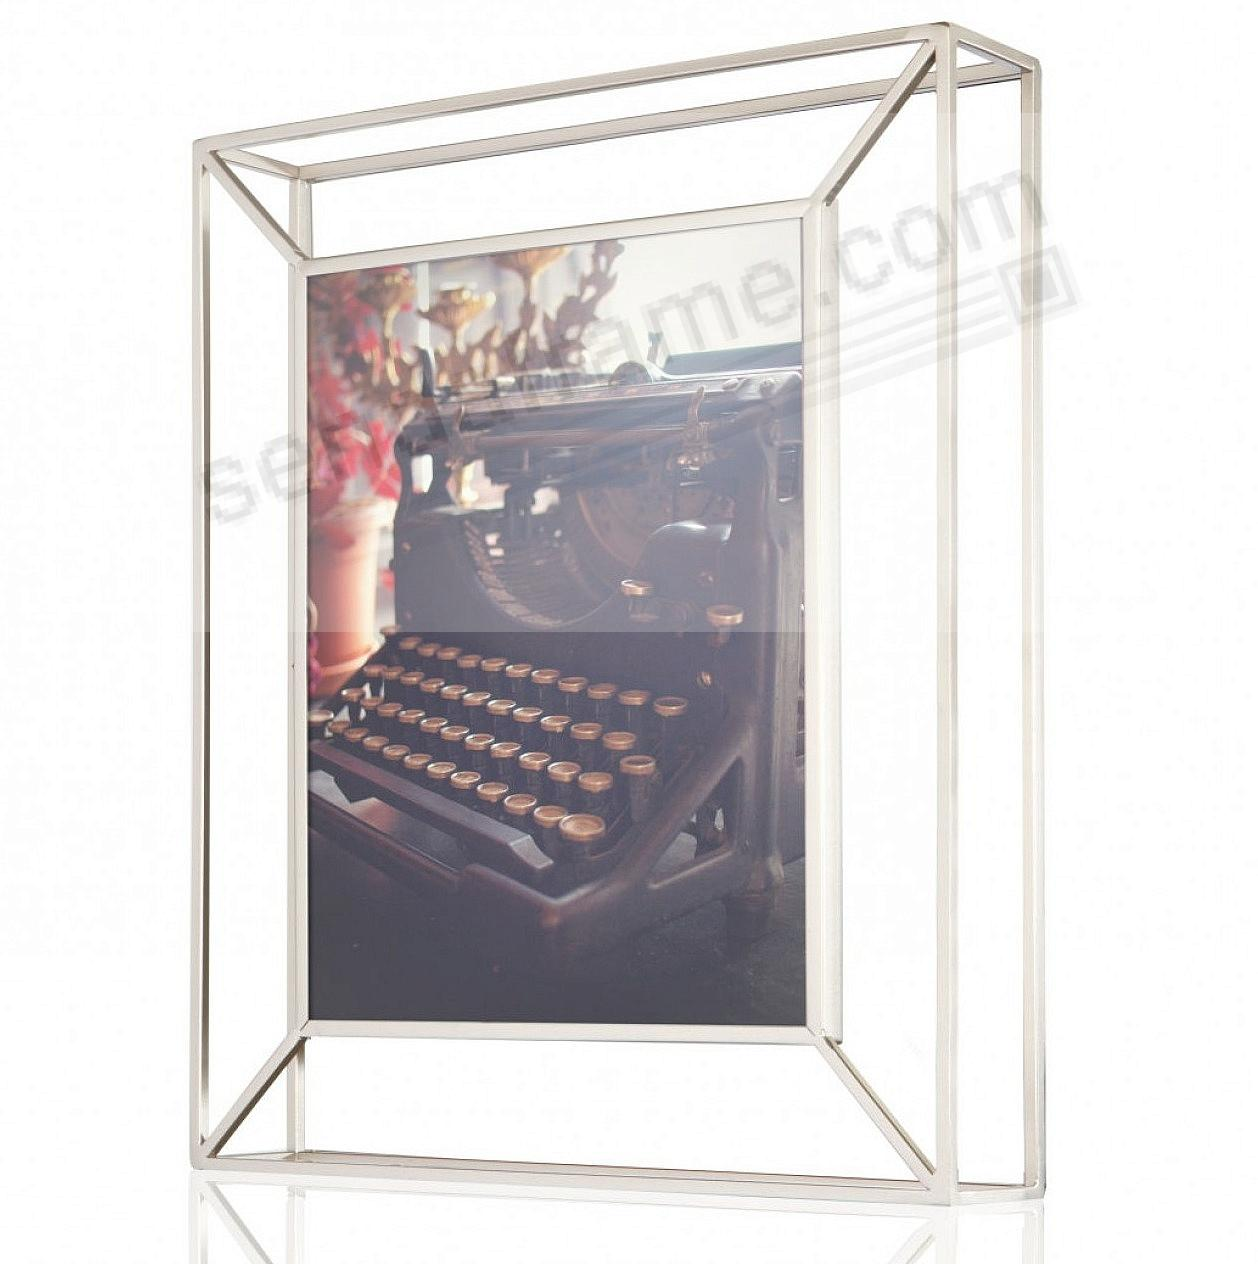 The Original MATRIX Photo Display Nickel 8x10 frame by Umbra®